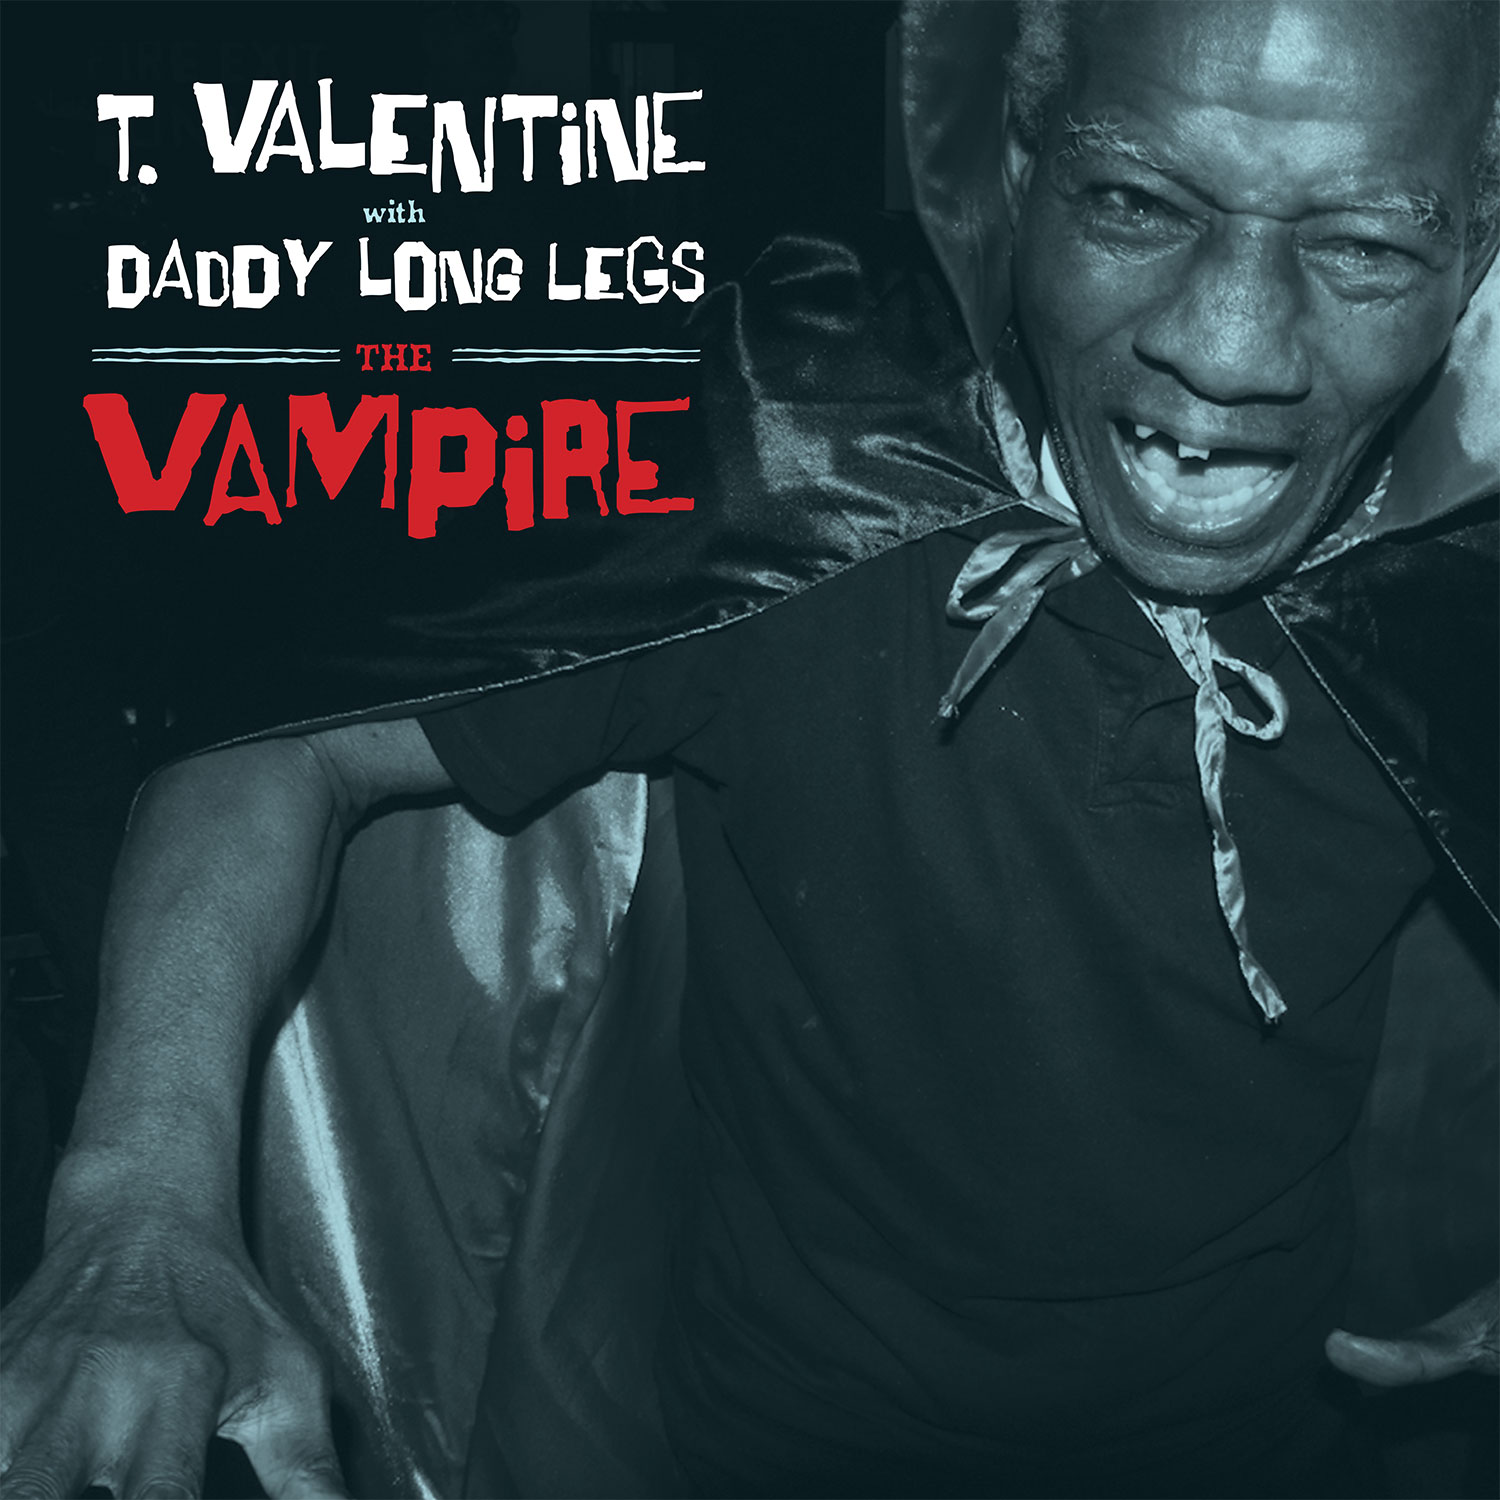 T. Valentine with Daddy Long Legs - The Vampire LP/CD cover